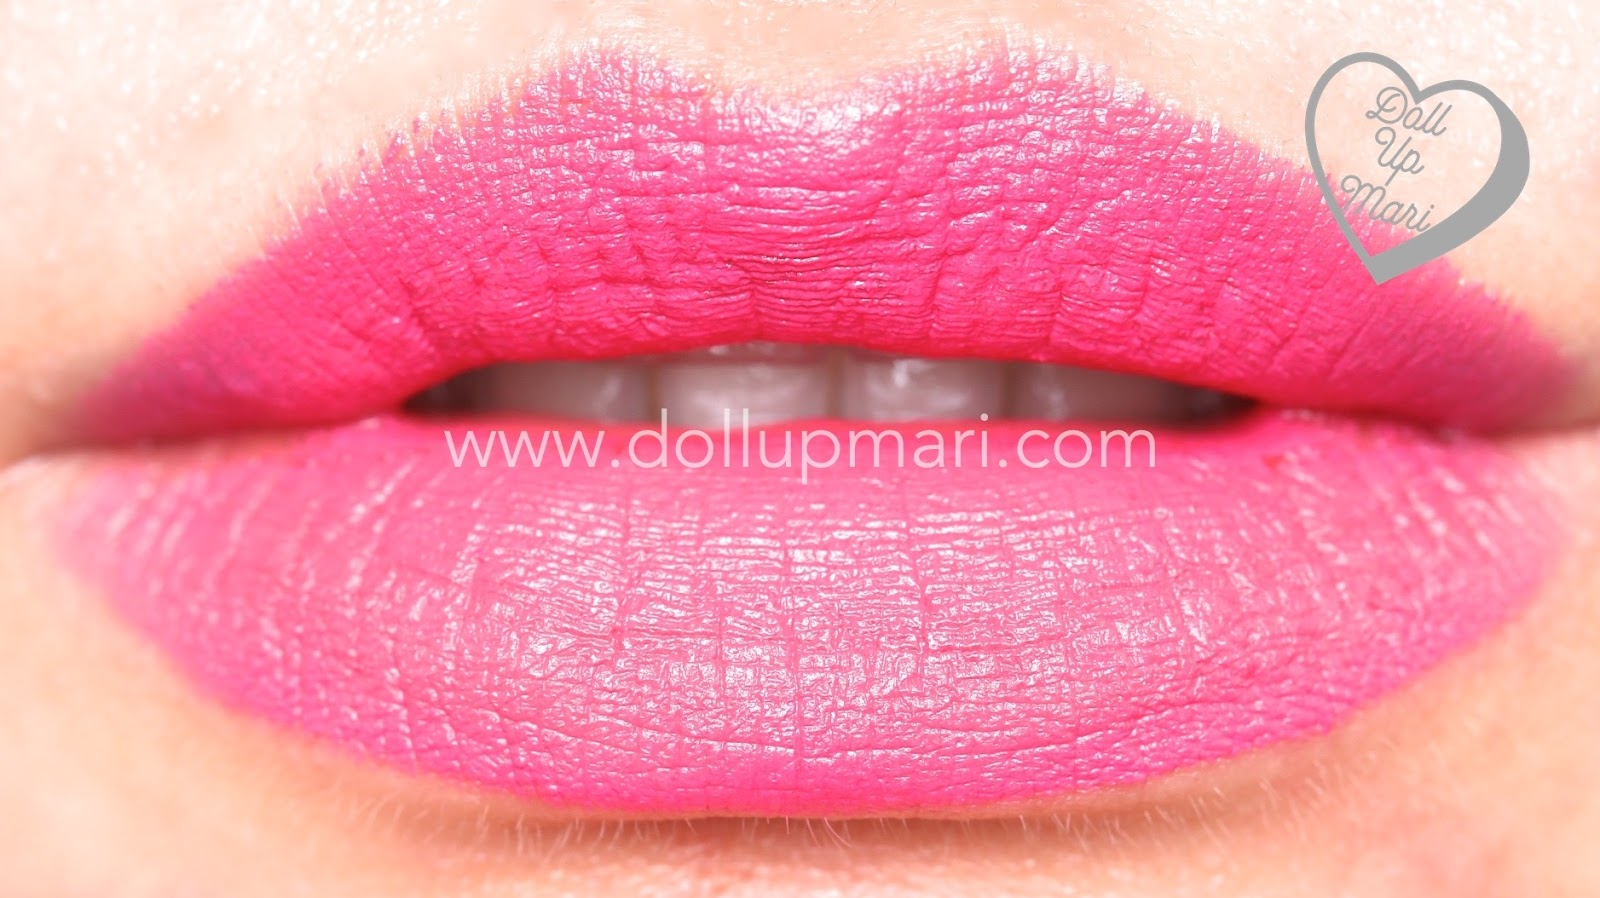 lip swatch of Adoring Love shade of AVON Perfectly Matte Lipstick